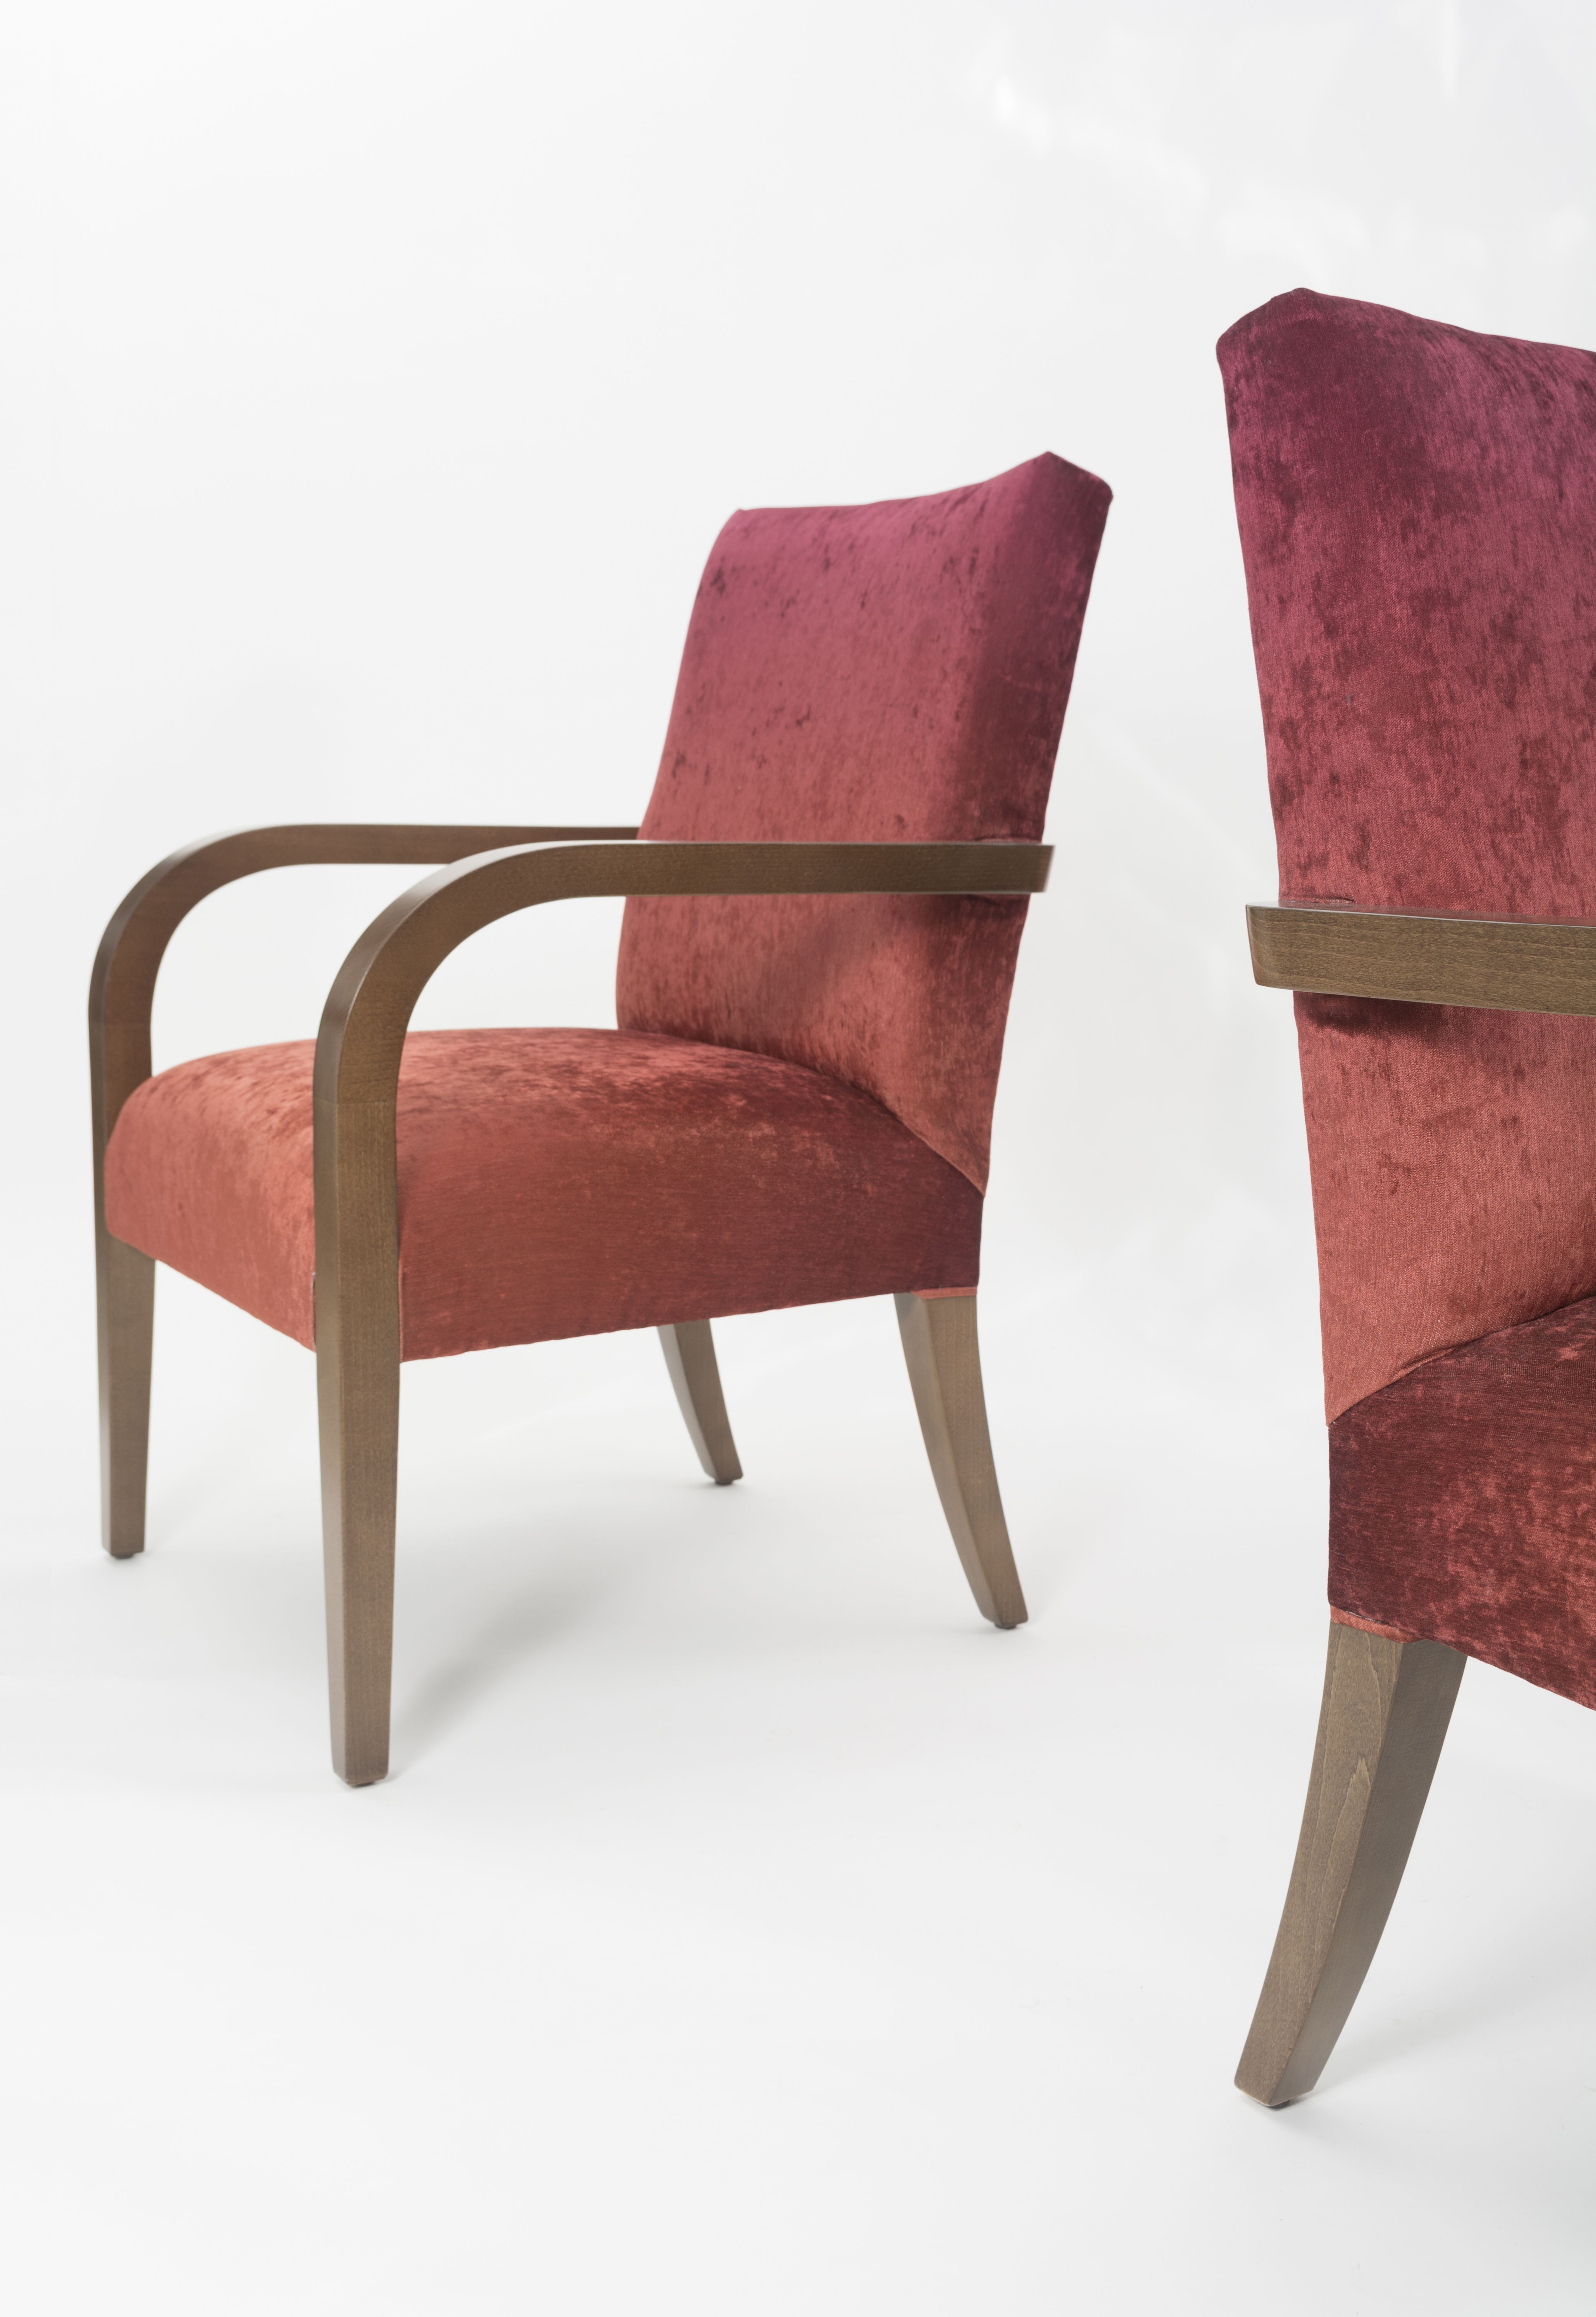 Delightful Custom Restaurant Armchairs With Fully Upholstered Seats And Backs And  Exposed, Continuous, Wood Arms